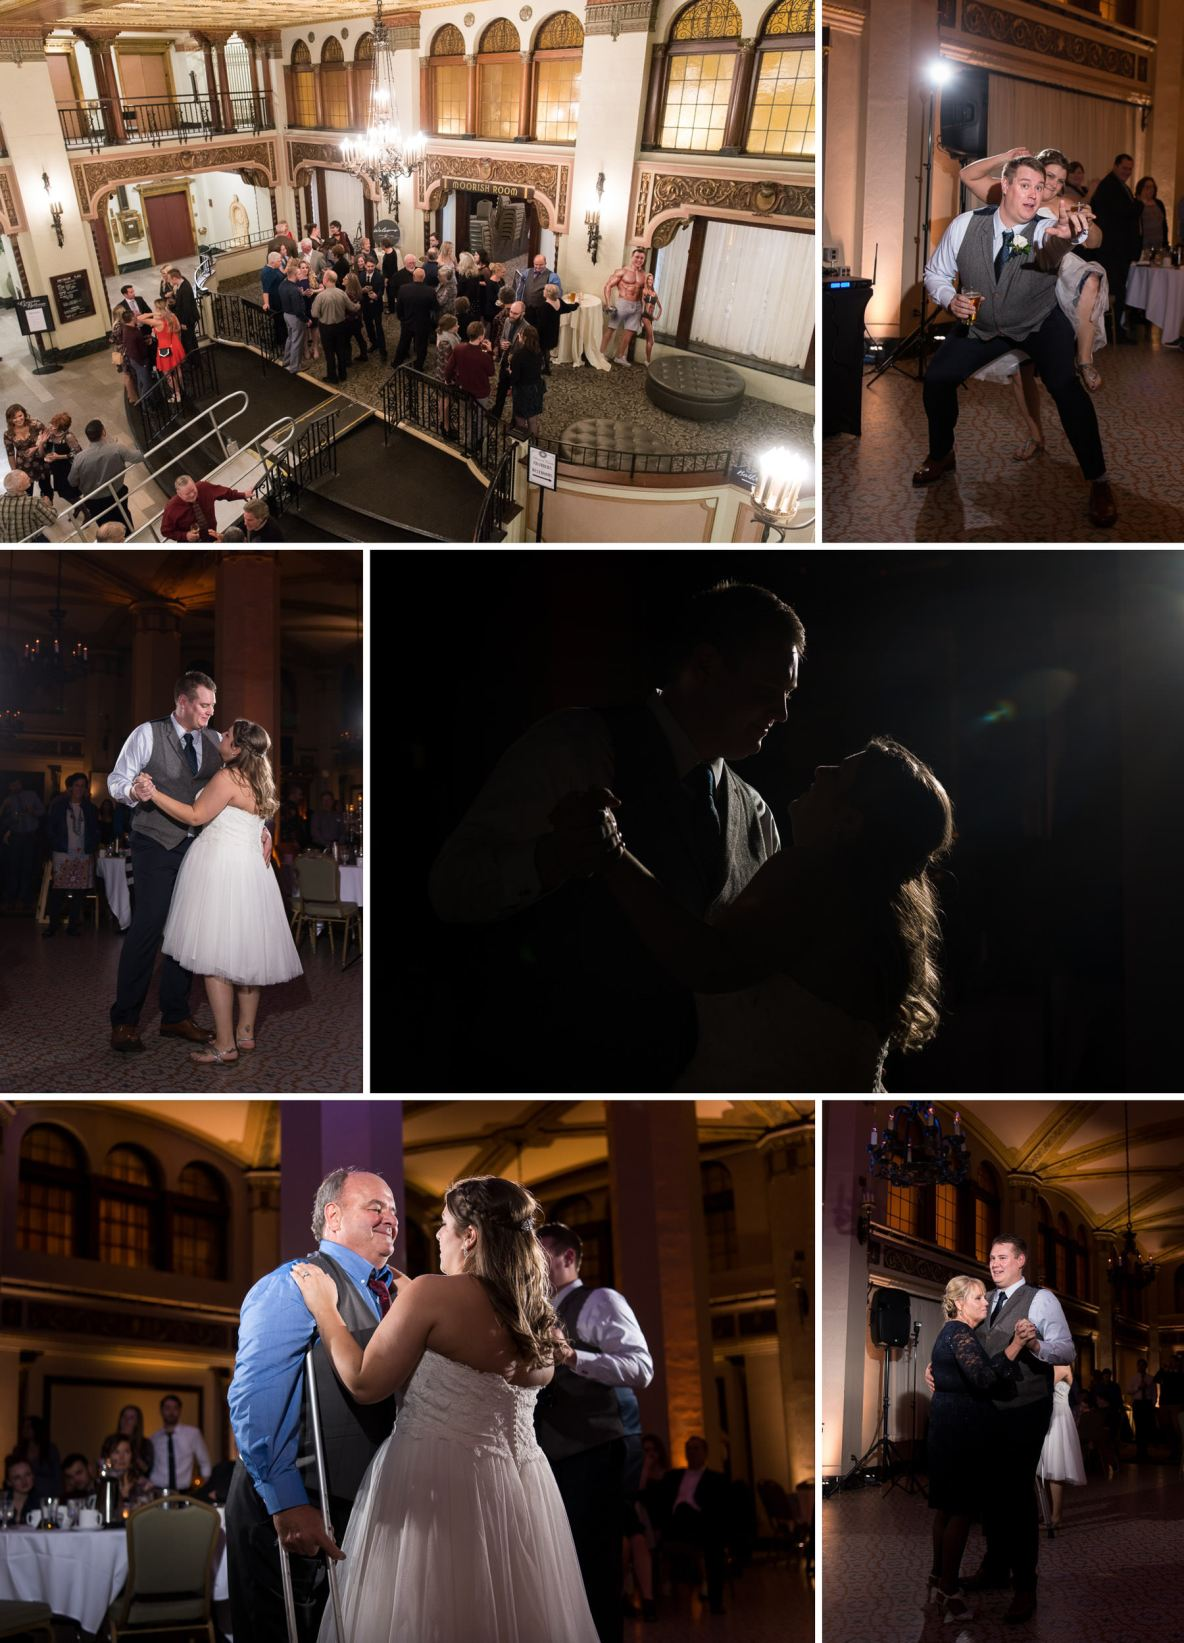 First dance and reception photos.